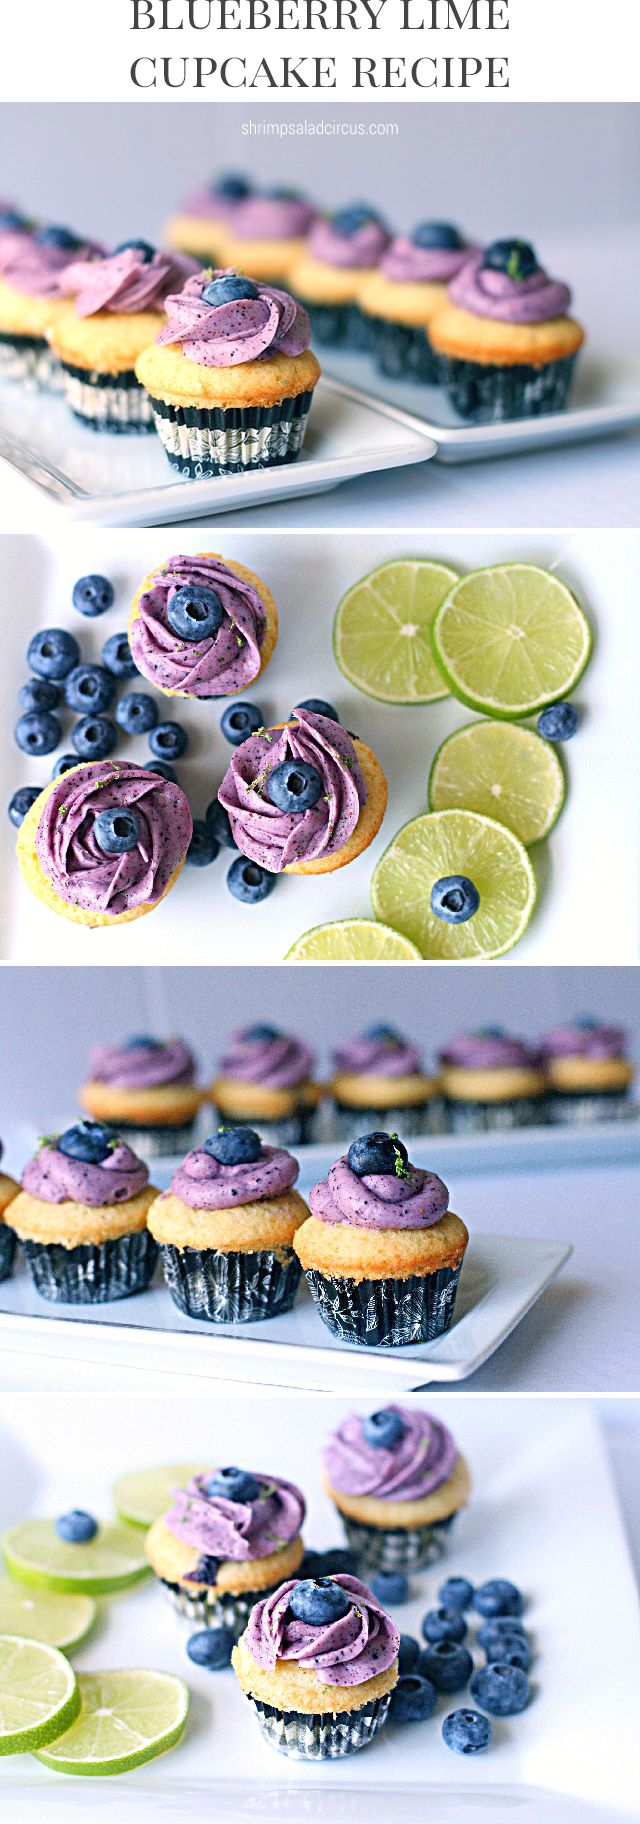 Blueberry Lime Cupcakes Recipe - Shrimp Salad Circus